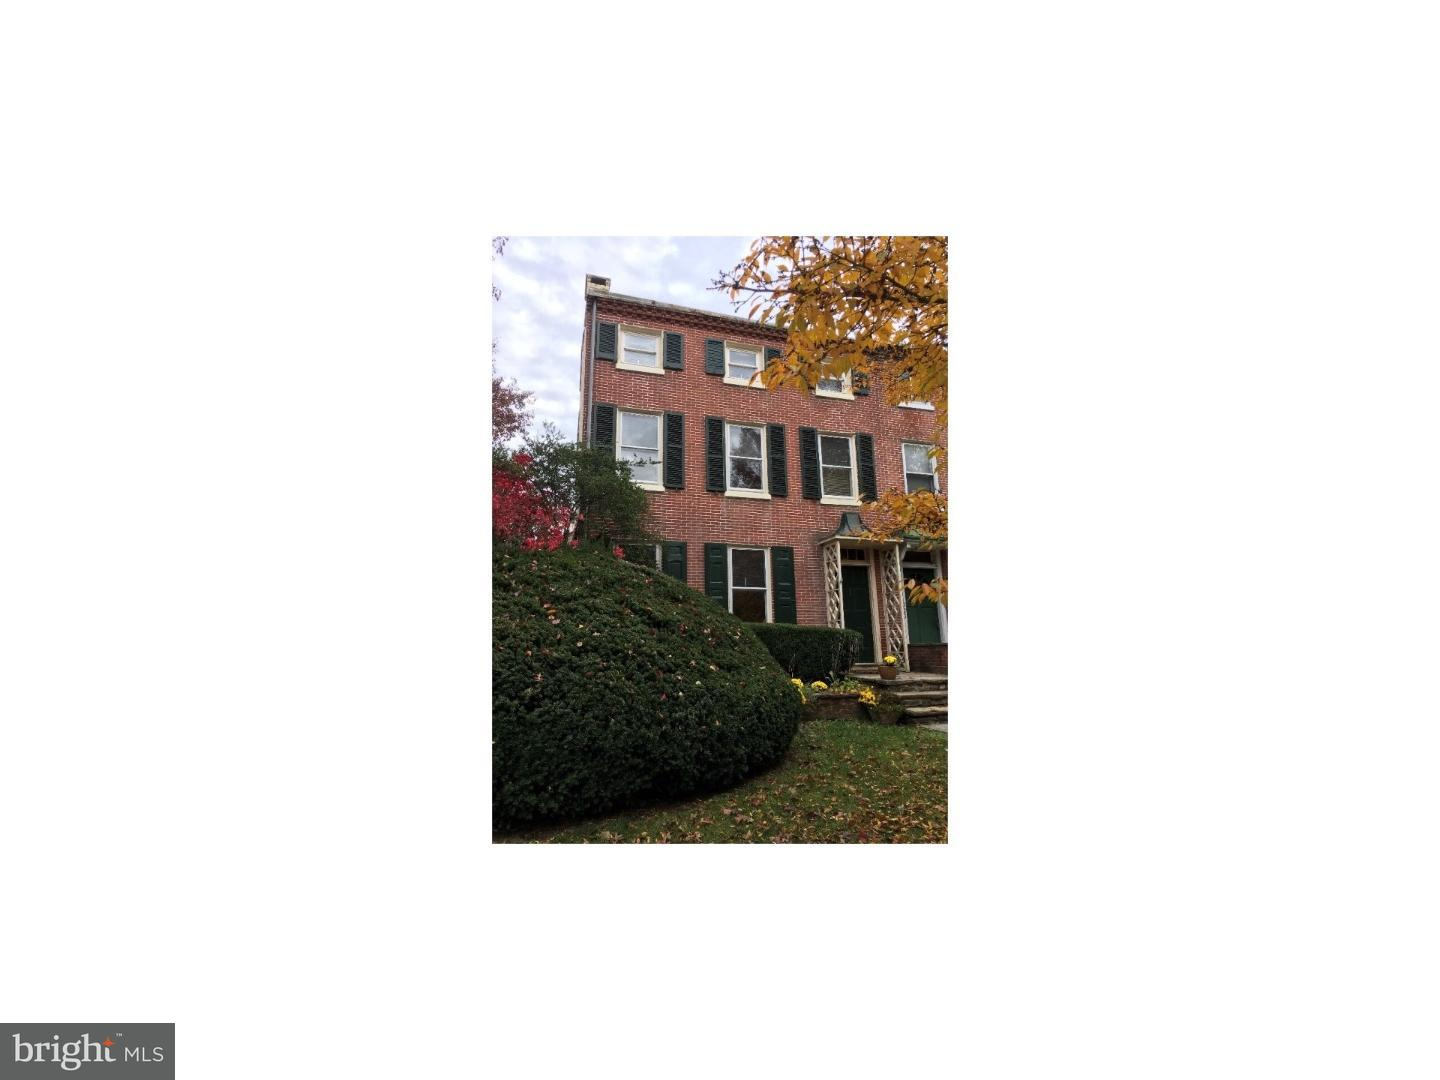 329 N High Street West Chester, PA 19380